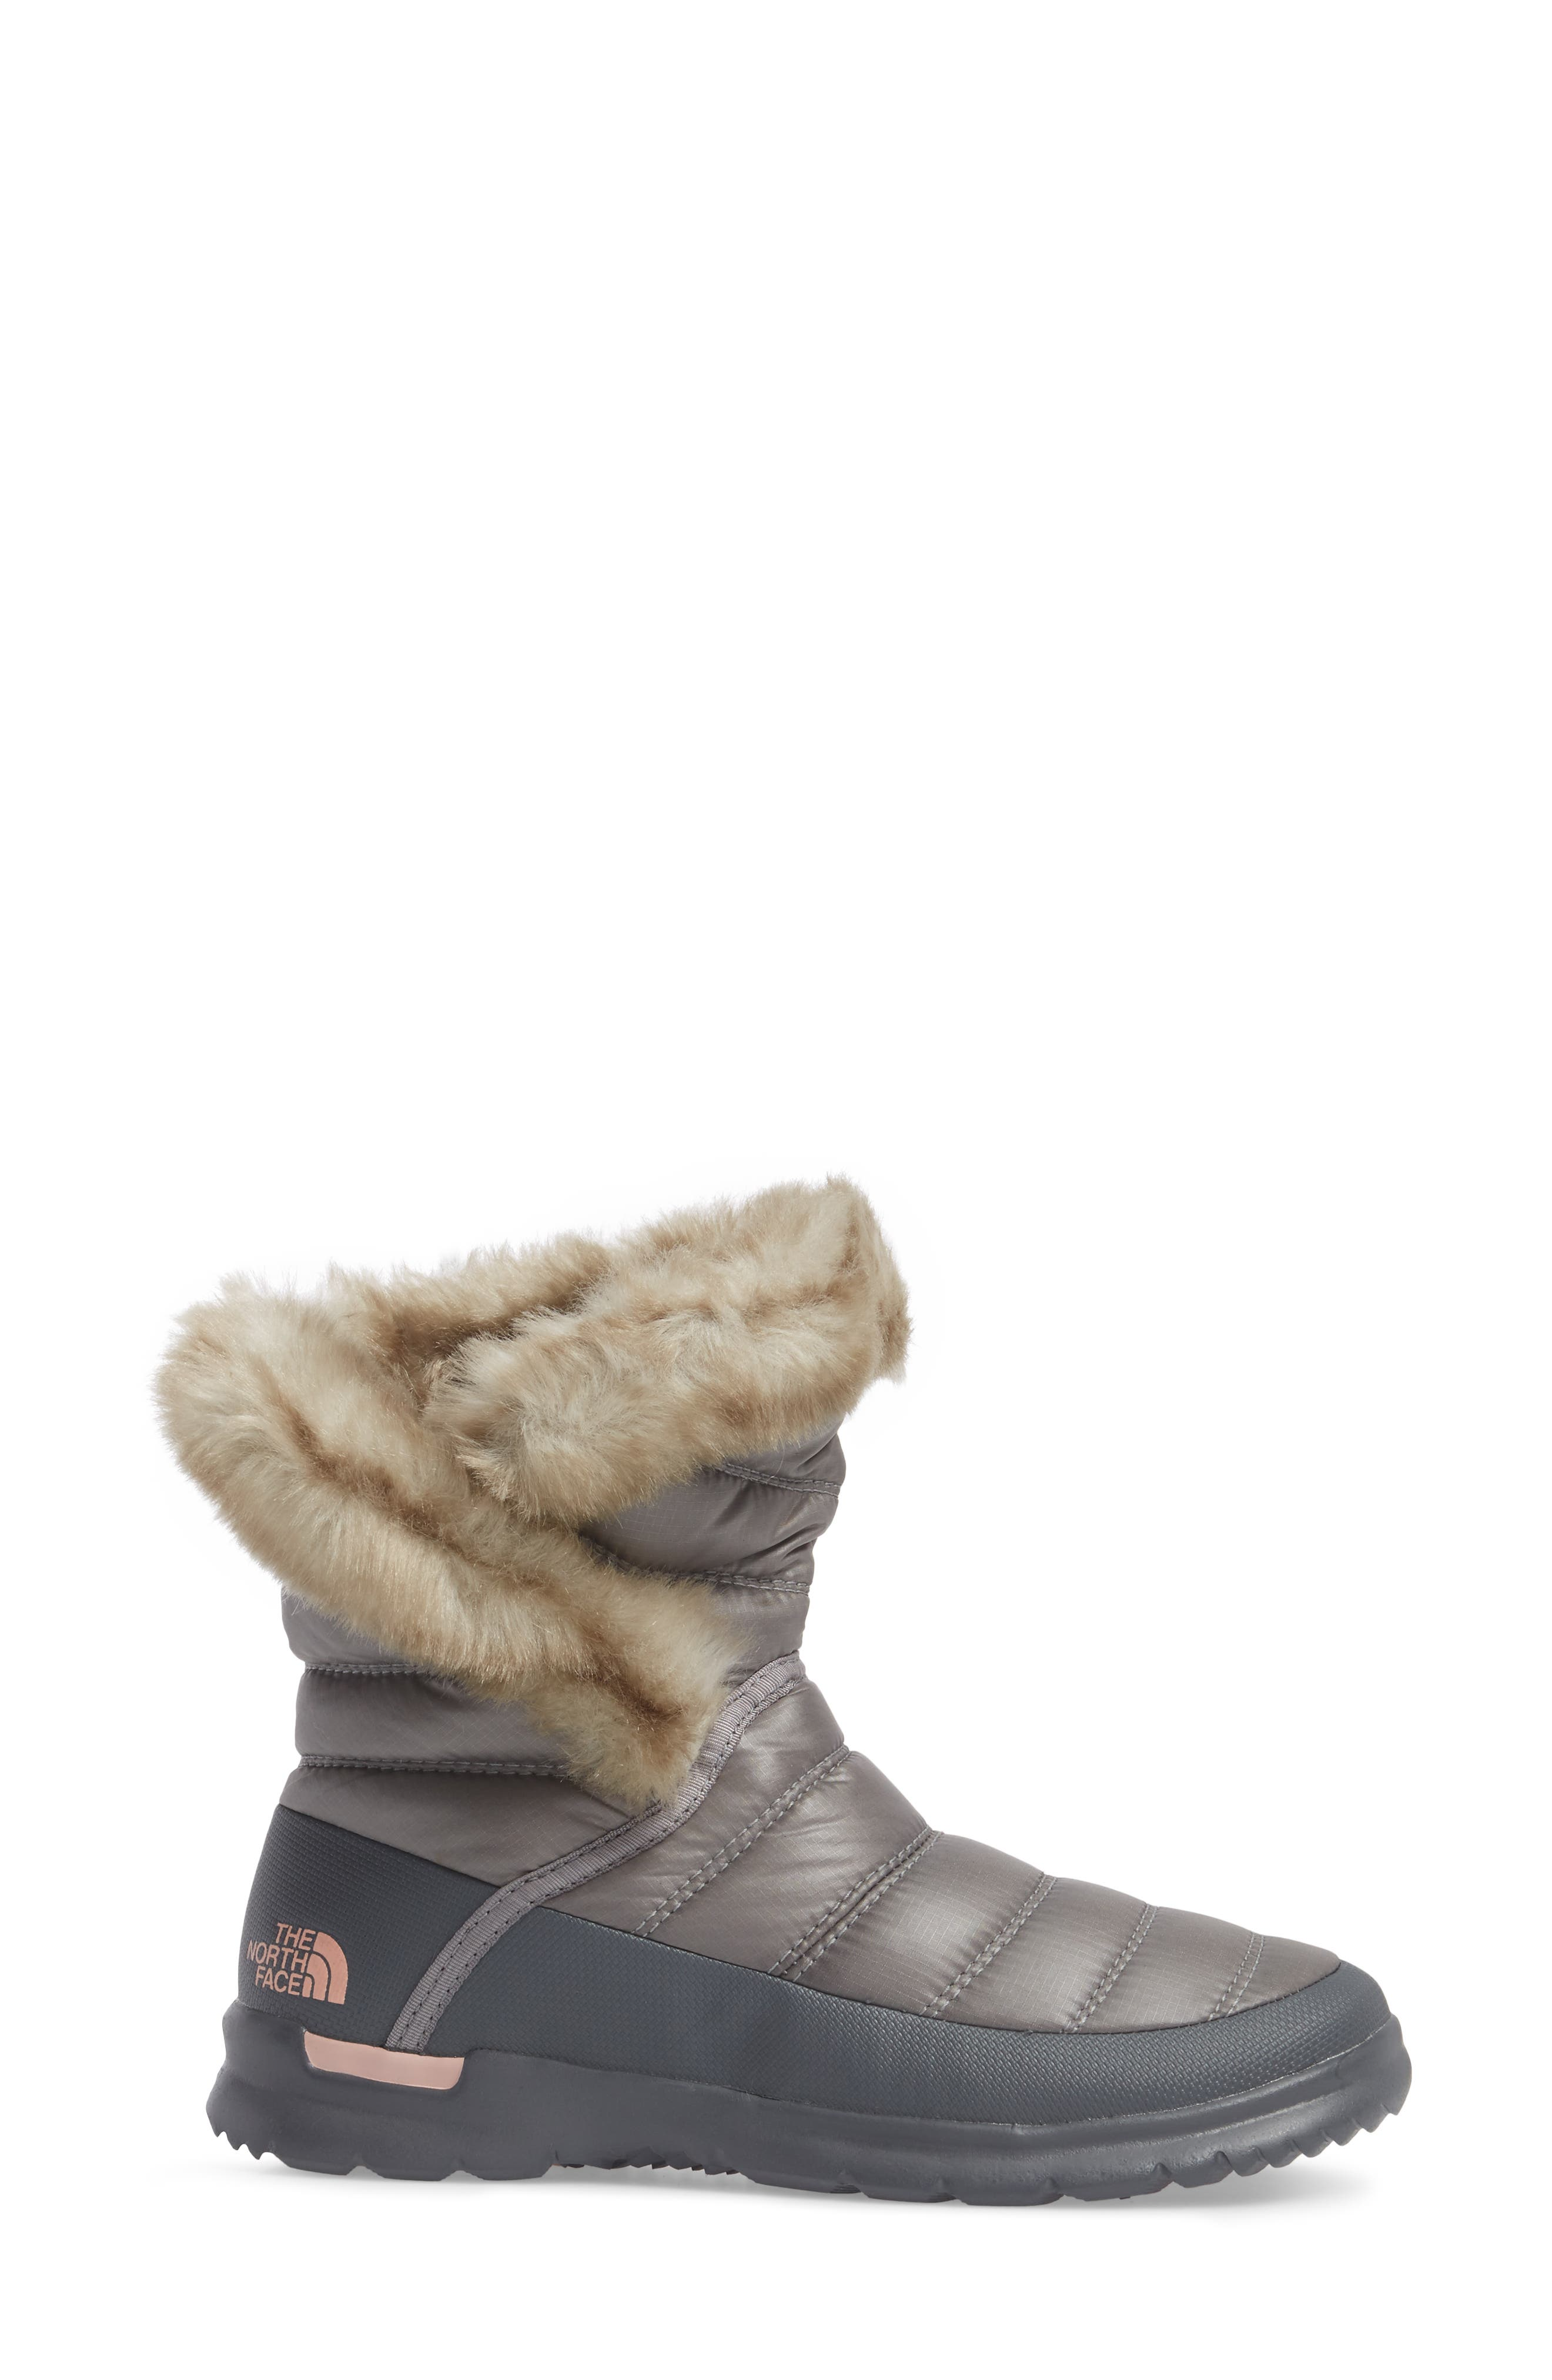 THE NORTH FACE,                             Microbaffle Waterproof ThermoBall<sup>™</sup> Insulated Winter Boot,                             Alternate thumbnail 3, color,                             021